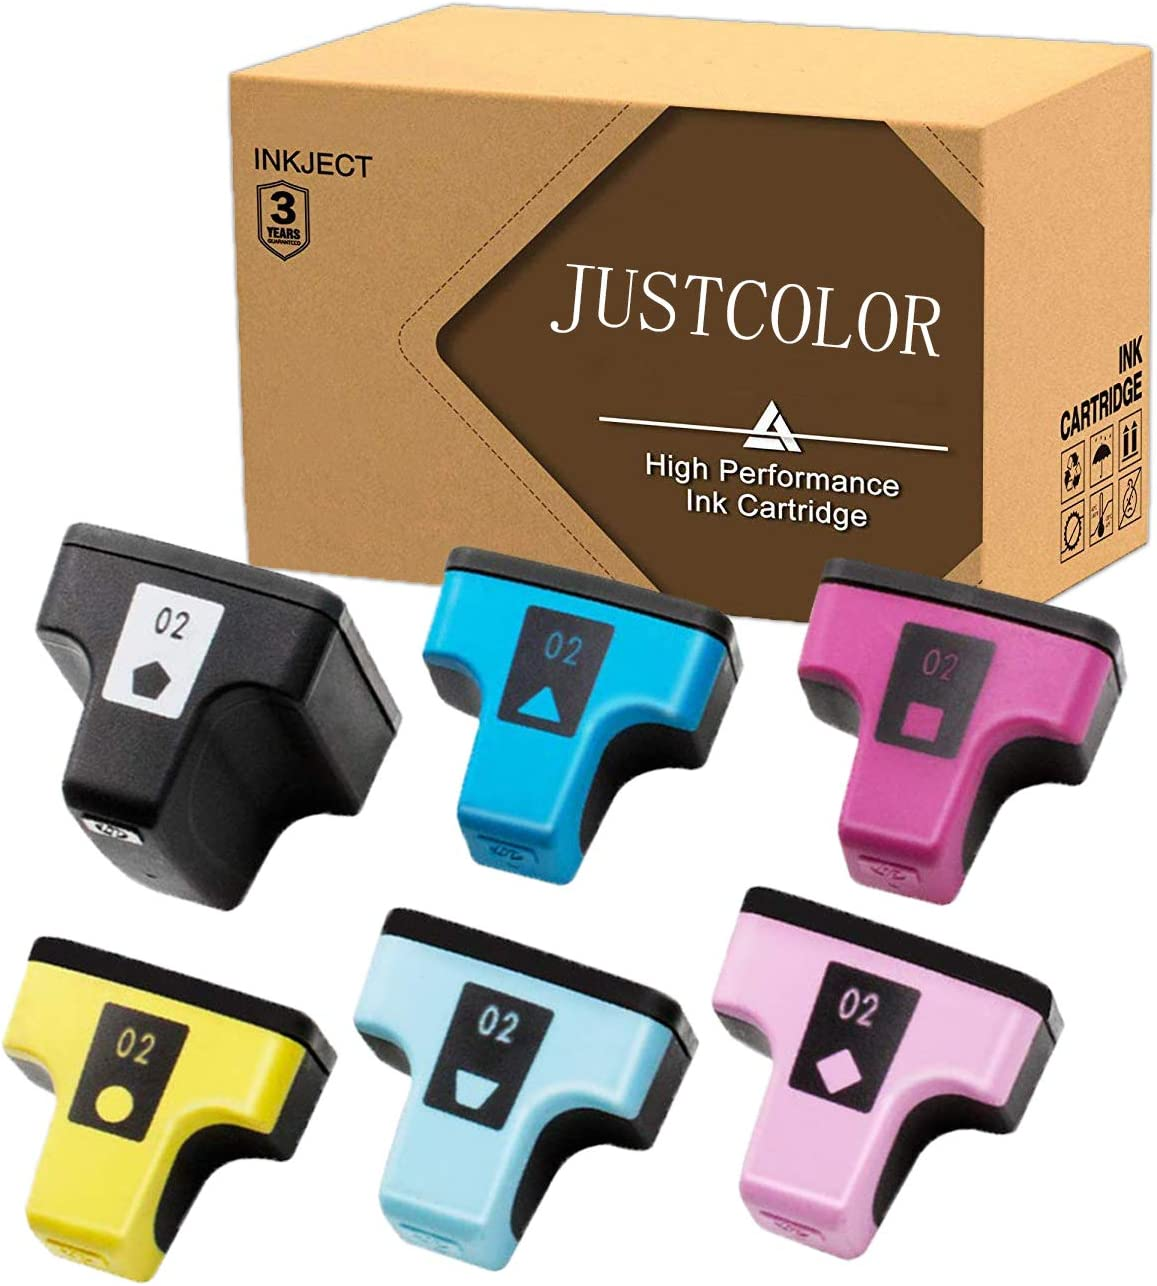 JUSTCOLOR Remanufactured Ink Cartridge Replacement for HP 02 Q7964AN use for PhotoSmart C7280 C6280 C5180 C6180 D7360 D7460 8250 C7200 (Black/Cyan/Magenta/Yellow/Light Cyan/Light Magenta) 6 Pack